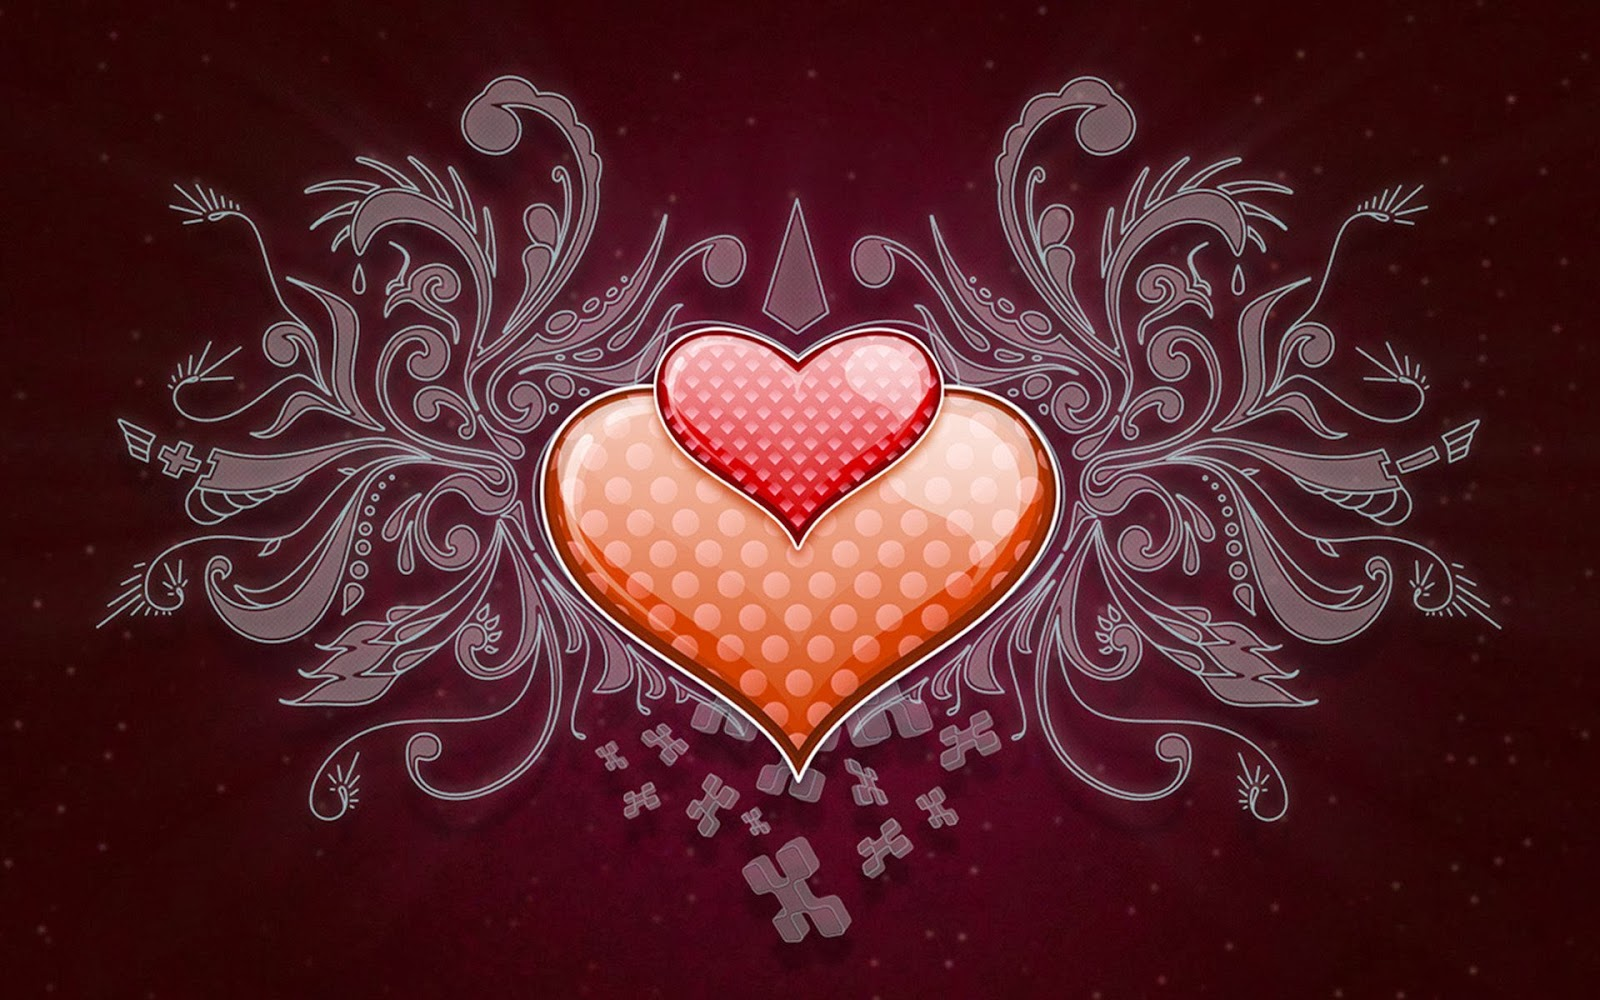 Valentine Day Wallpapers Backgrounds Love Quotes Wallpaper Windows 7 Macintosh Mobile ...